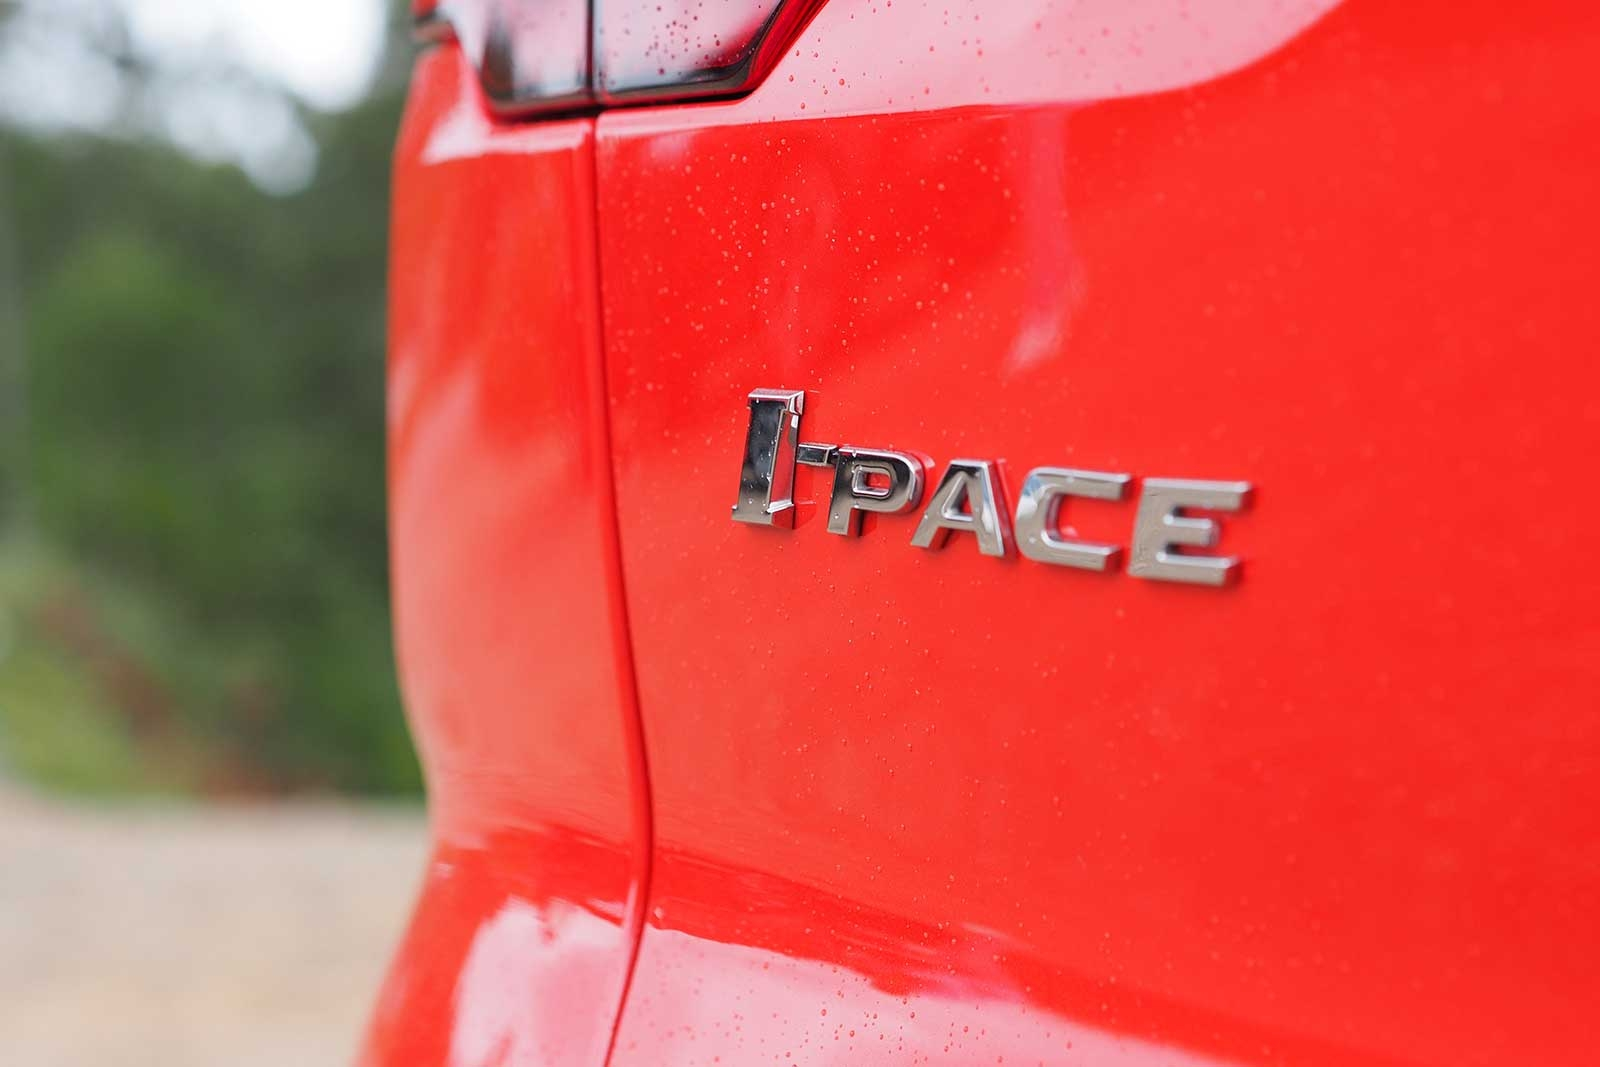 2019-Jaguar-I-Pace-Badge-06